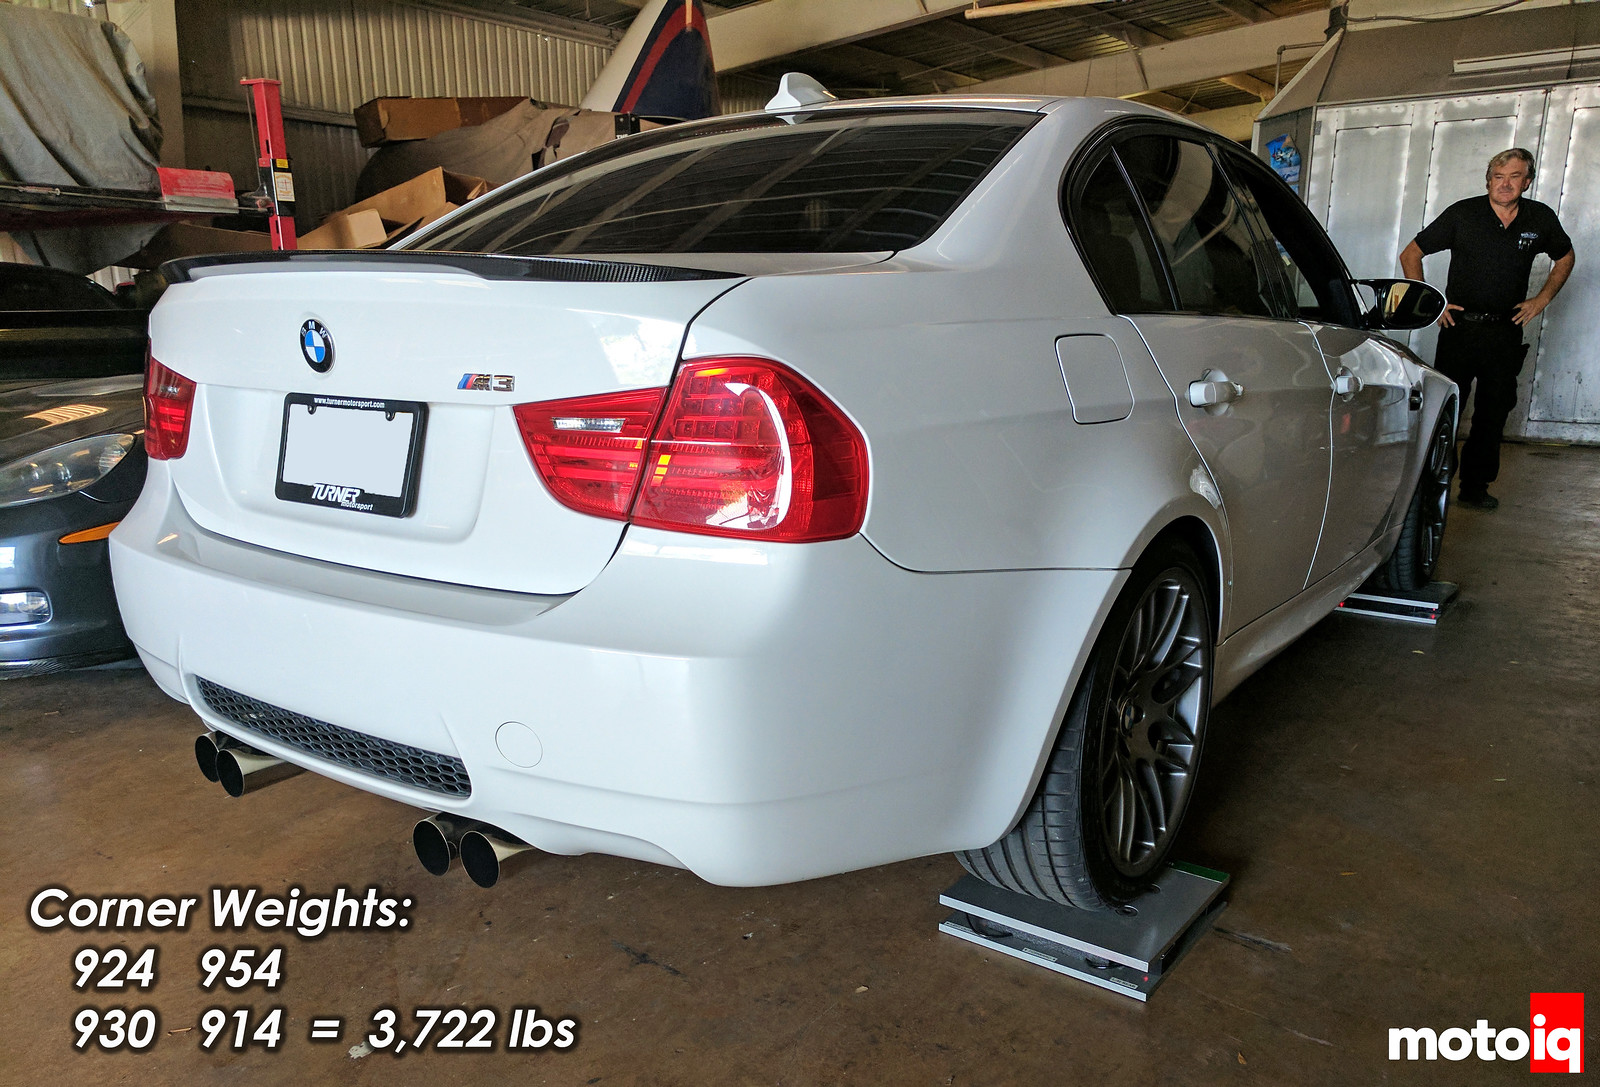 E90 M3 on scales corner weight